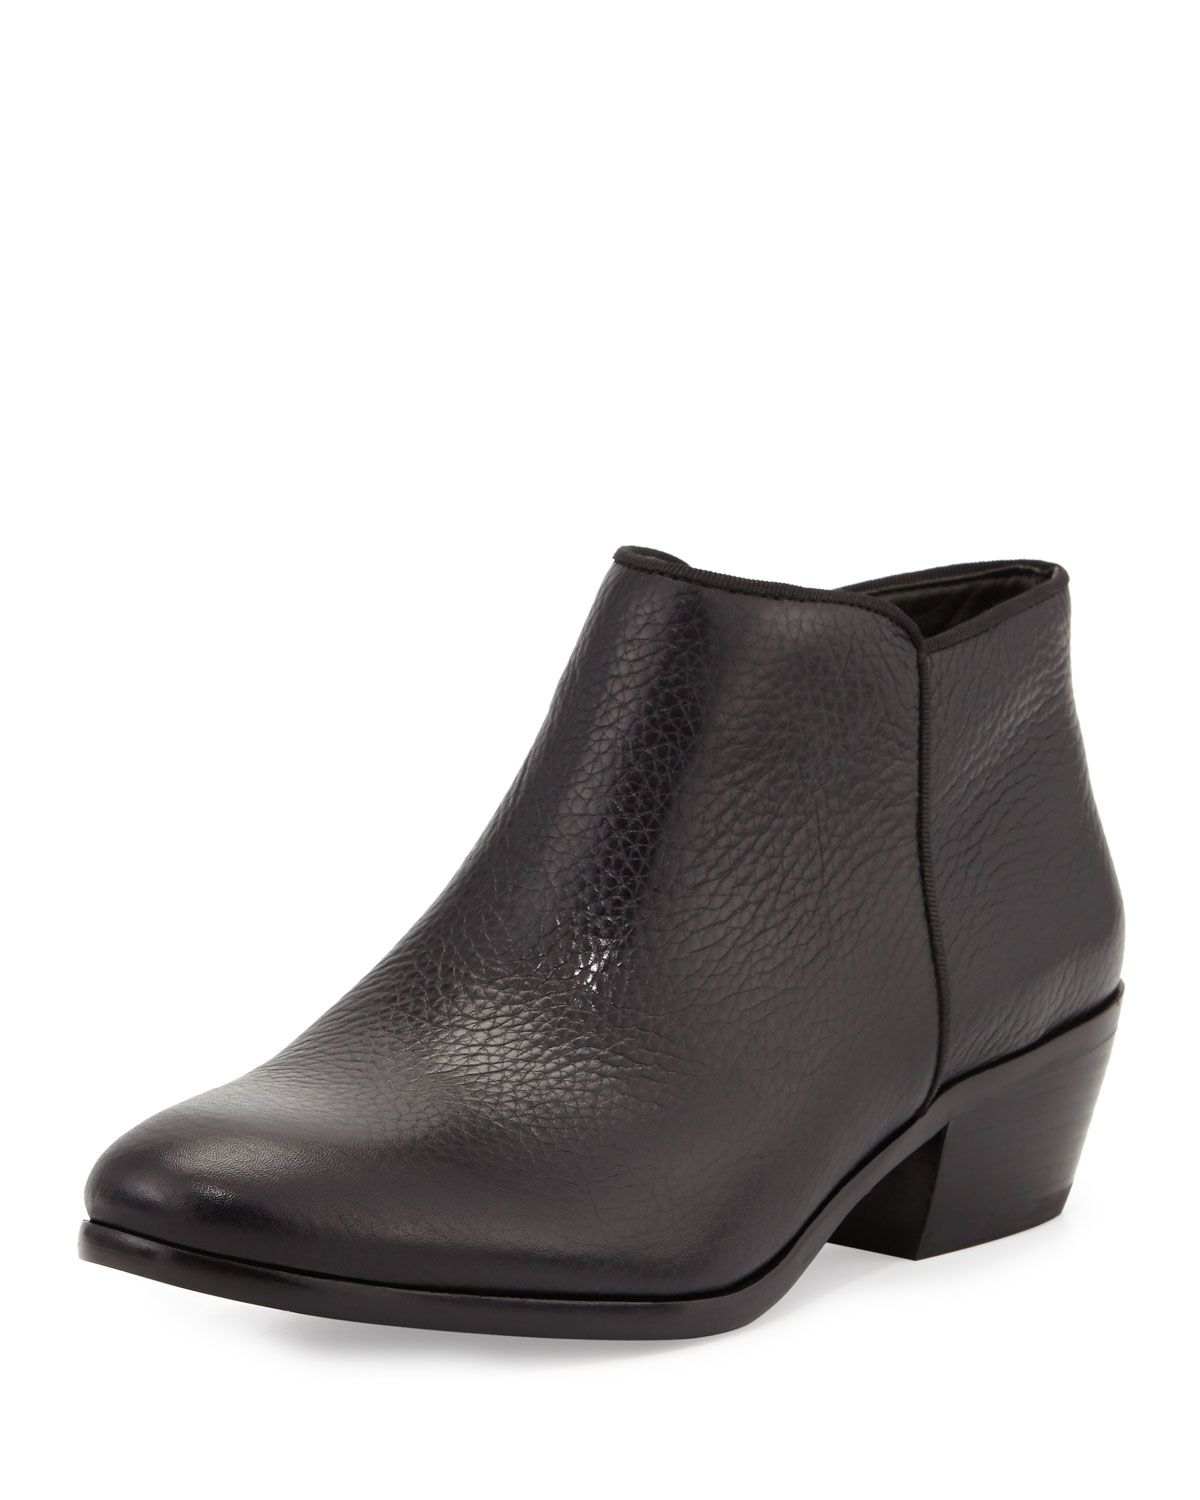 1dbbd152cc0555 Petty Leather Ankle Bootie